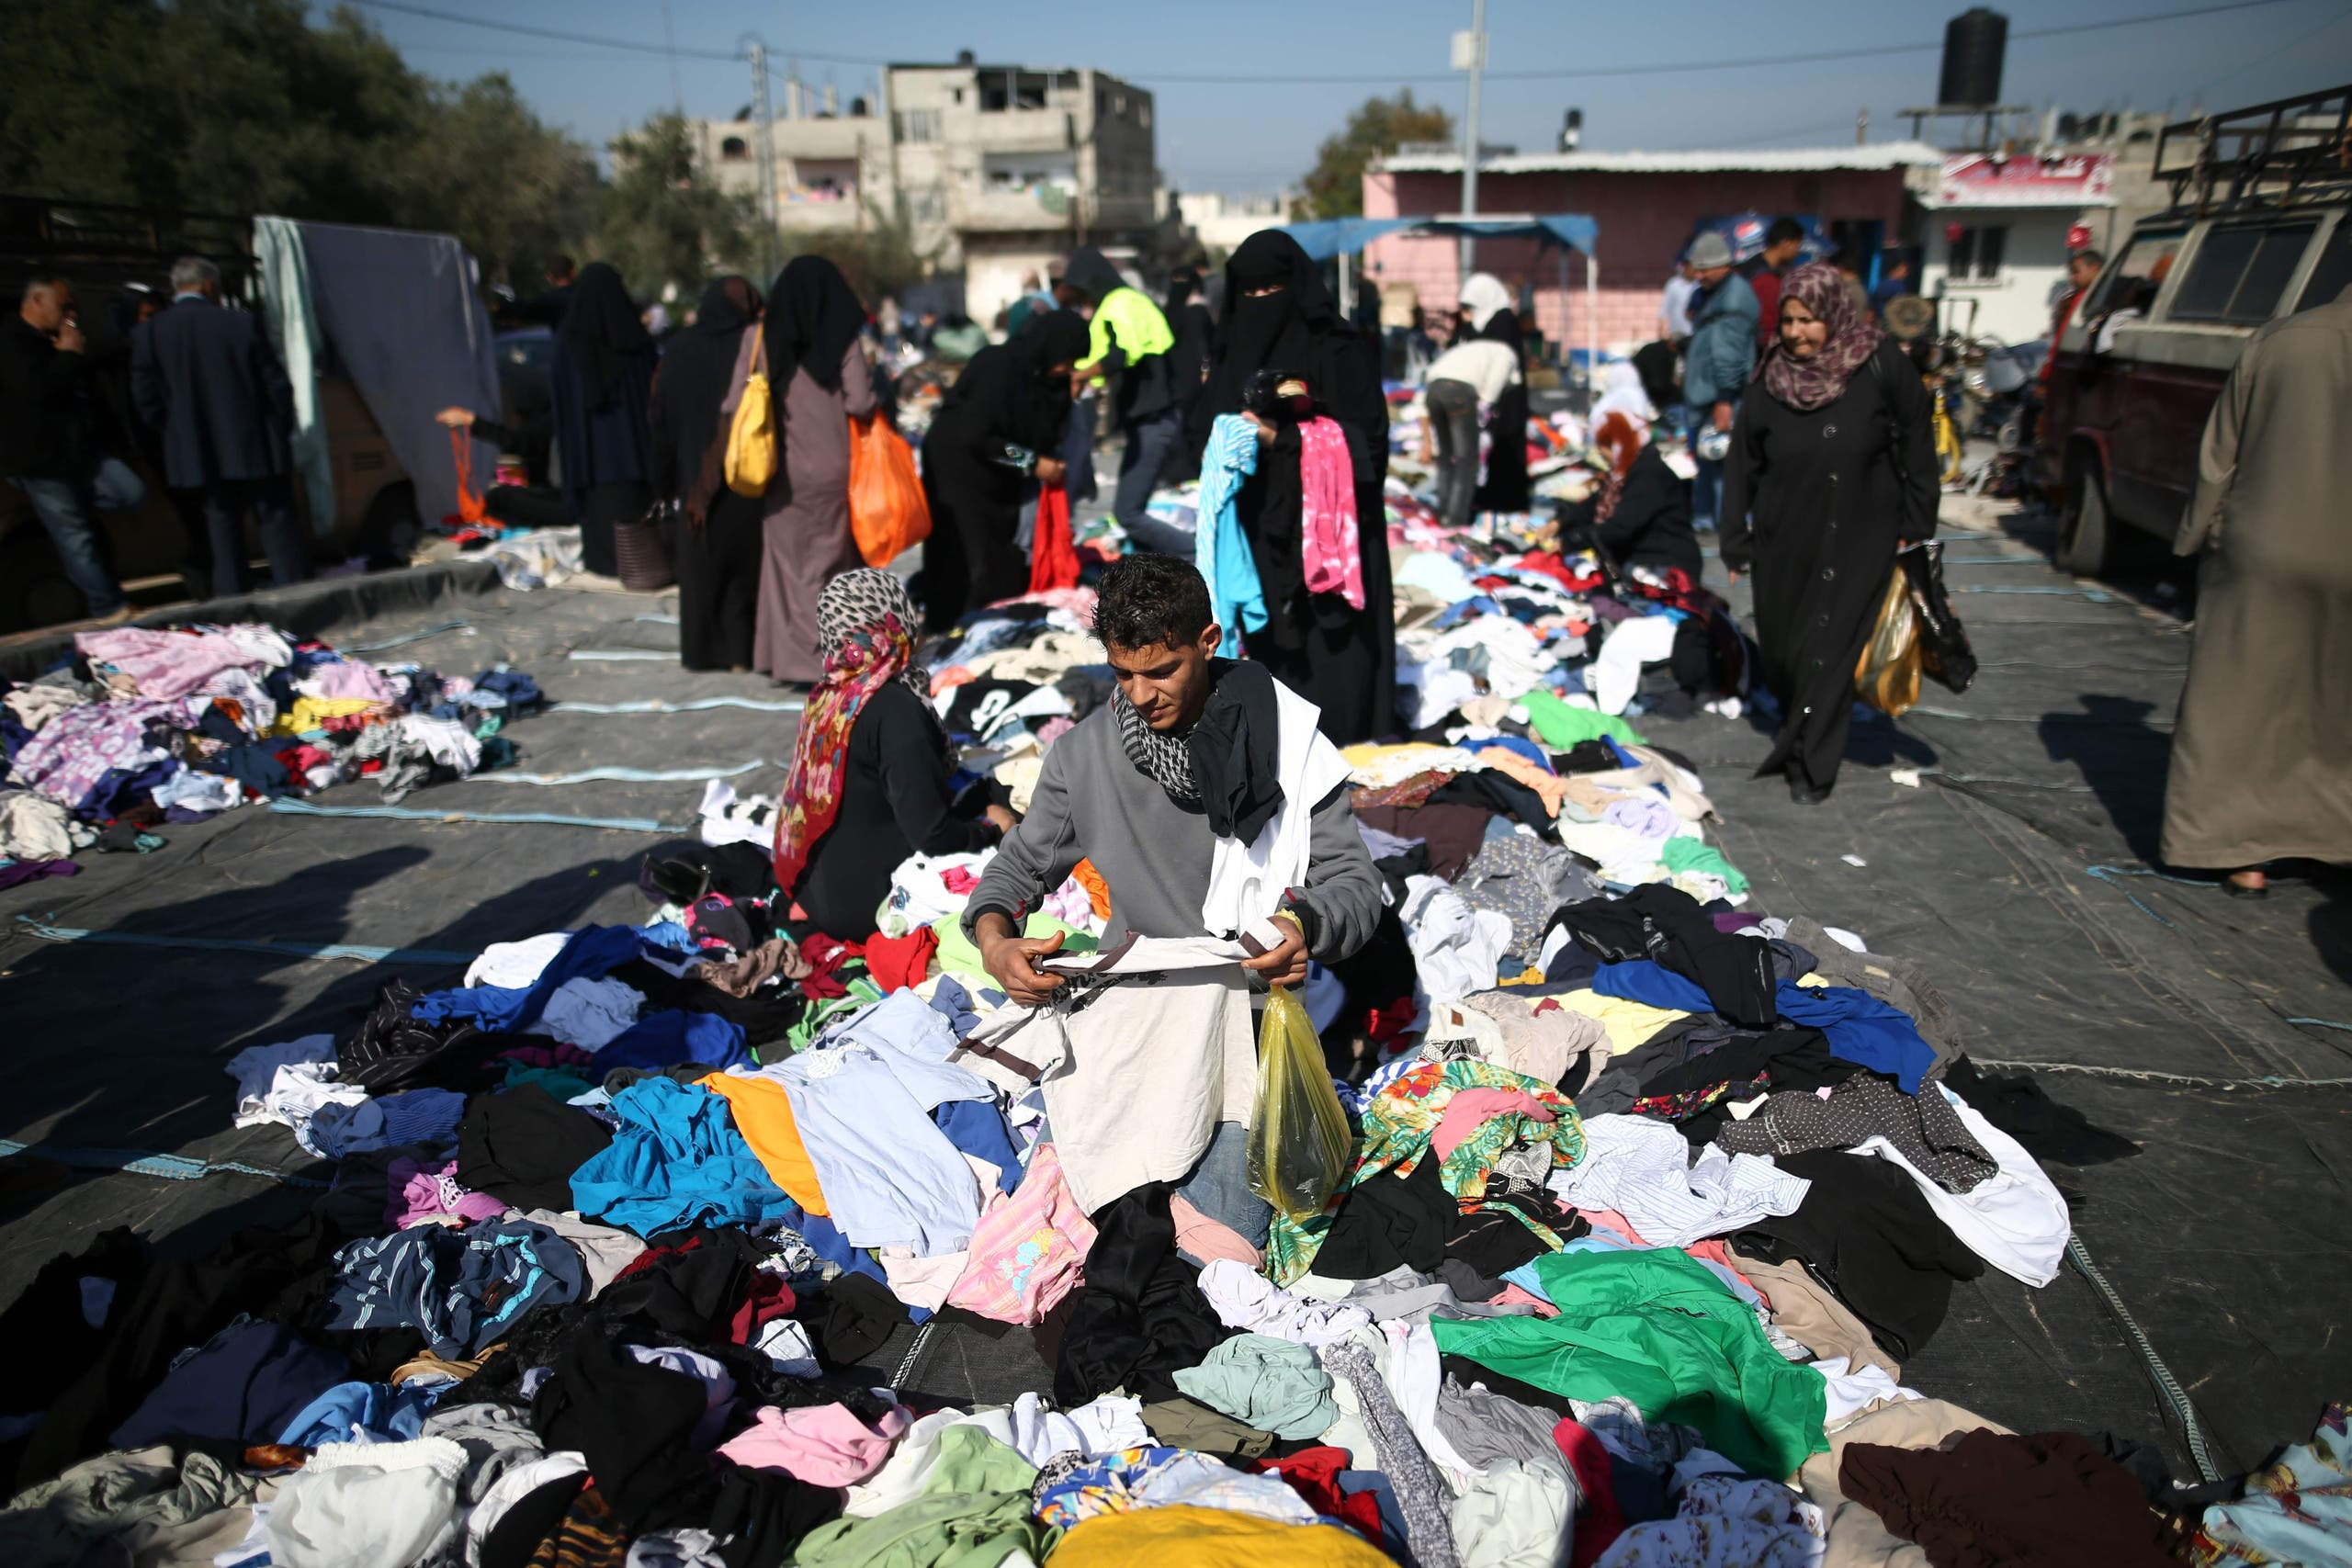 Palestinians sifts through used clothes and items at the weekly flea market in the Nusseirat refugee camp, central Gaza Strip, on February 29, 2016.(AFP)